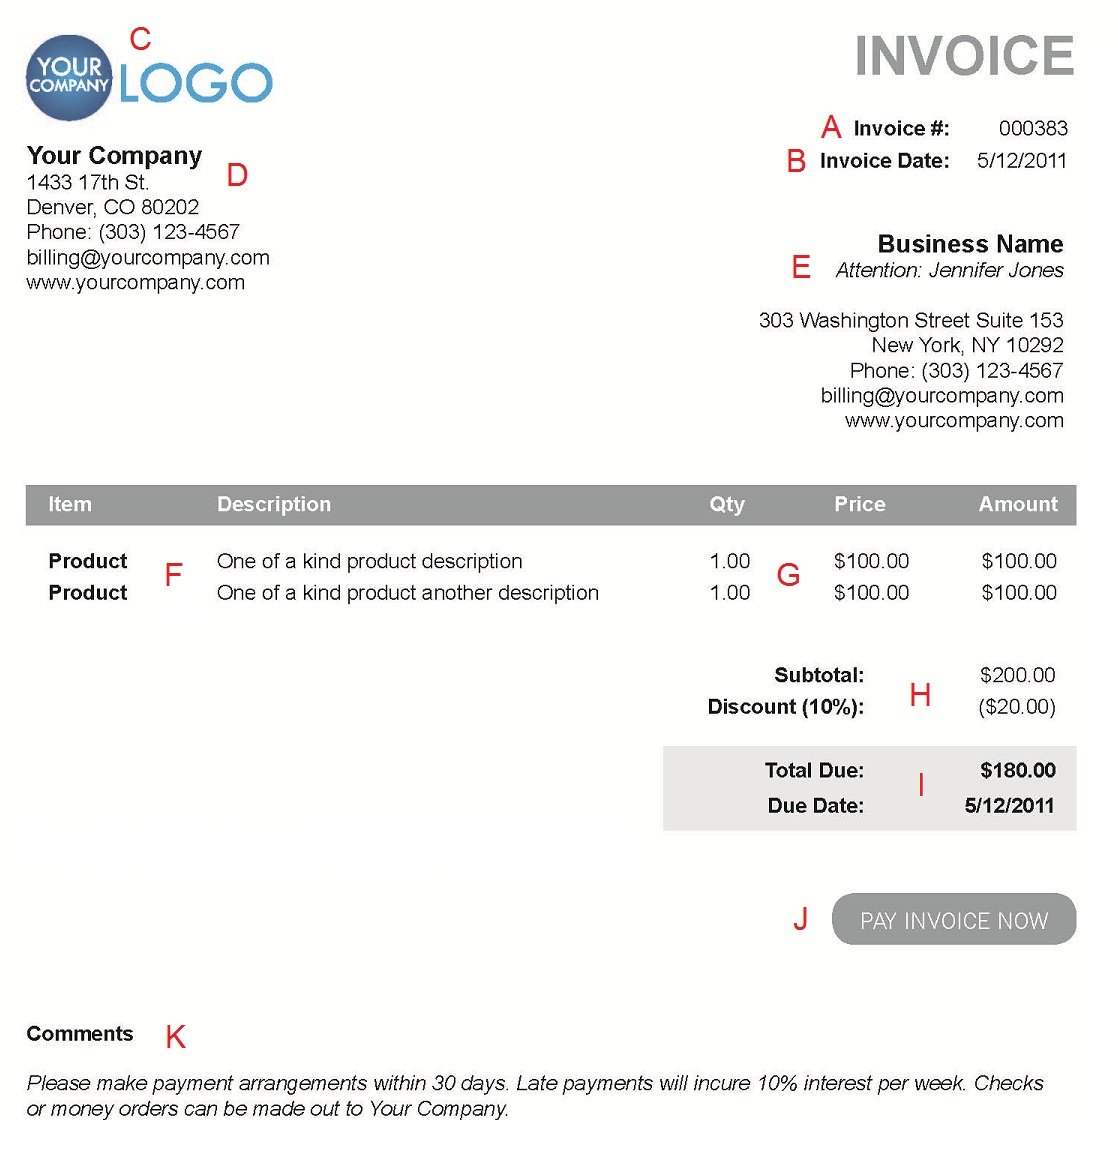 Centralasianshepherdus  Nice The  Different Sections Of An Electronic Payment Invoice With Interesting A  With Delightful Receipt For Biscuits Also Grocery Receipt Advertising In Addition Fried Chicken Receipt And Receipt For Payment Form As Well As Global Depository Receipt Additionally Charity Receipt Template From Paysimplecom With Centralasianshepherdus  Interesting The  Different Sections Of An Electronic Payment Invoice With Delightful A  And Nice Receipt For Biscuits Also Grocery Receipt Advertising In Addition Fried Chicken Receipt From Paysimplecom